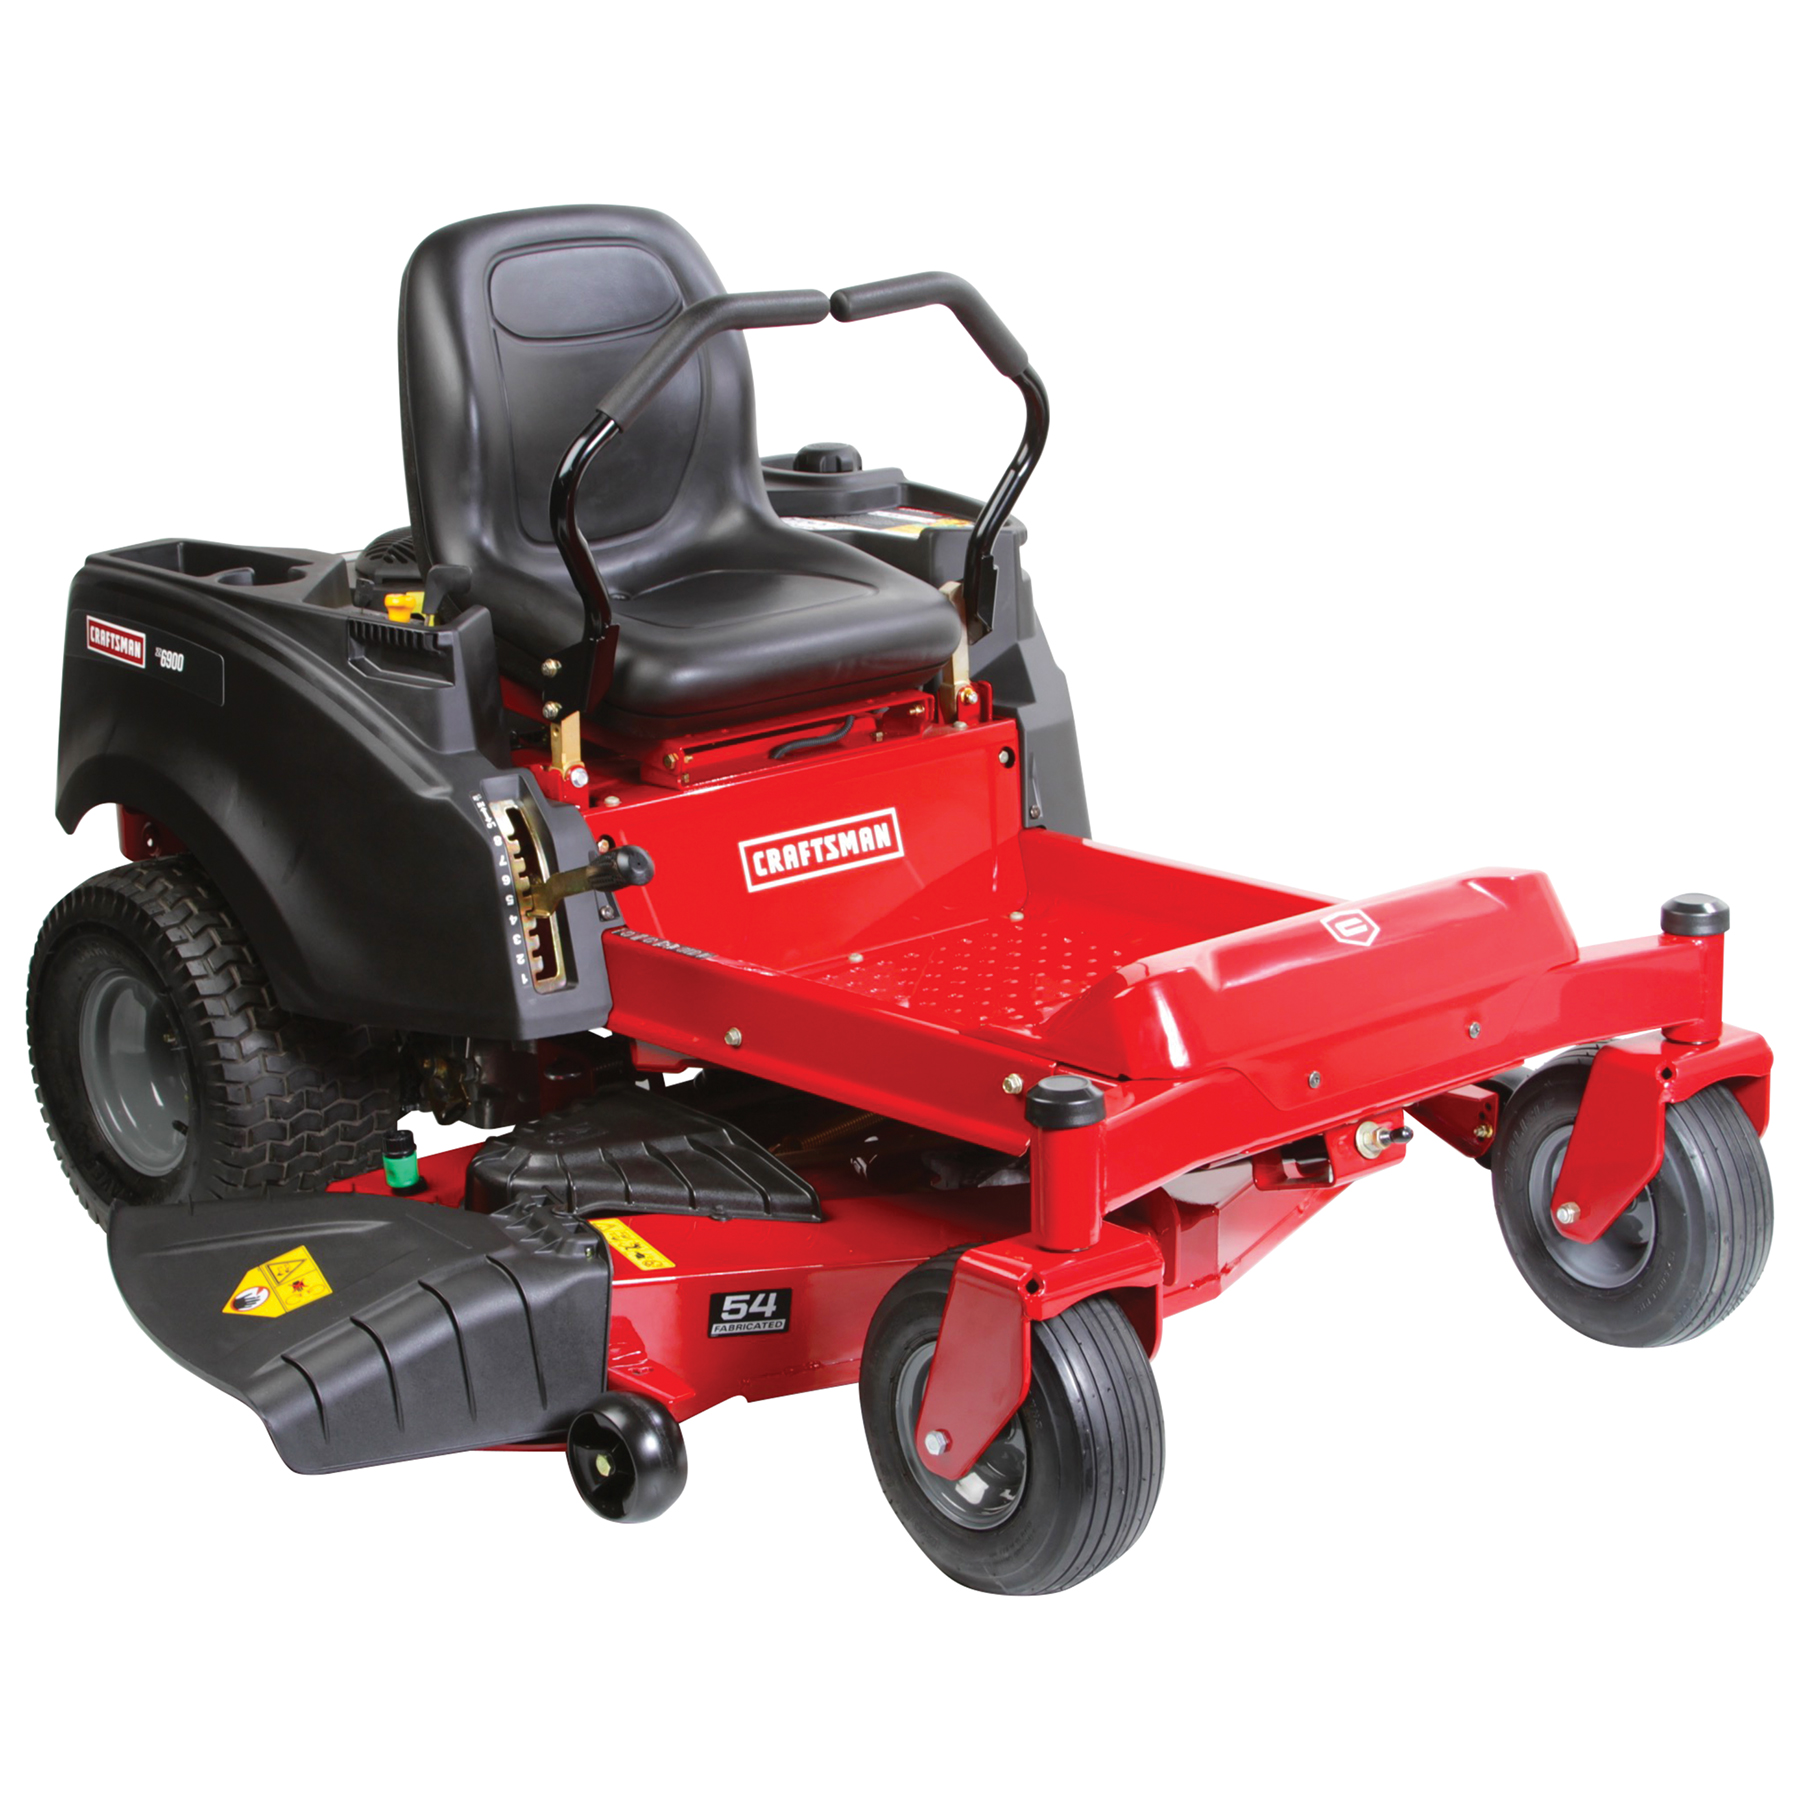 craftsman 27775 54 24 hp v twin kohler fabricated deck zero turn riding mower [ 1800 x 1800 Pixel ]